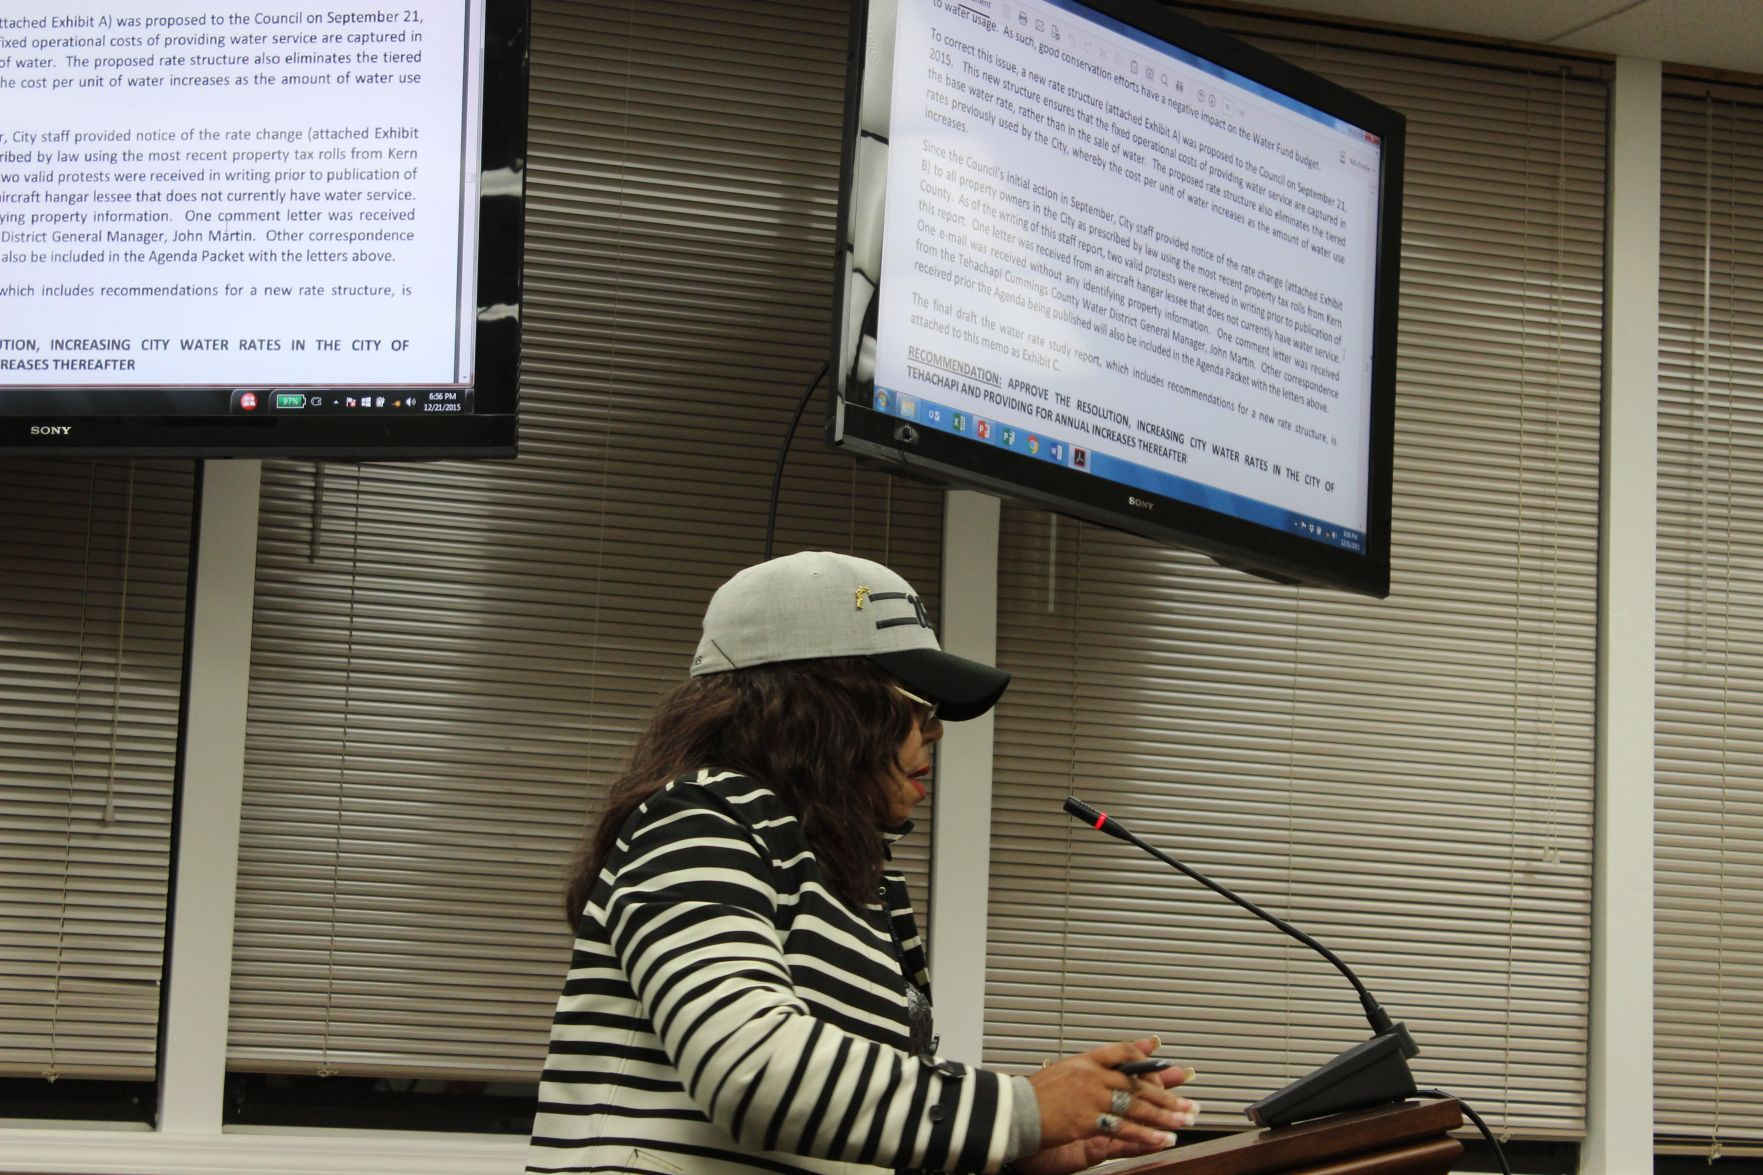 City Council approves new water rates for